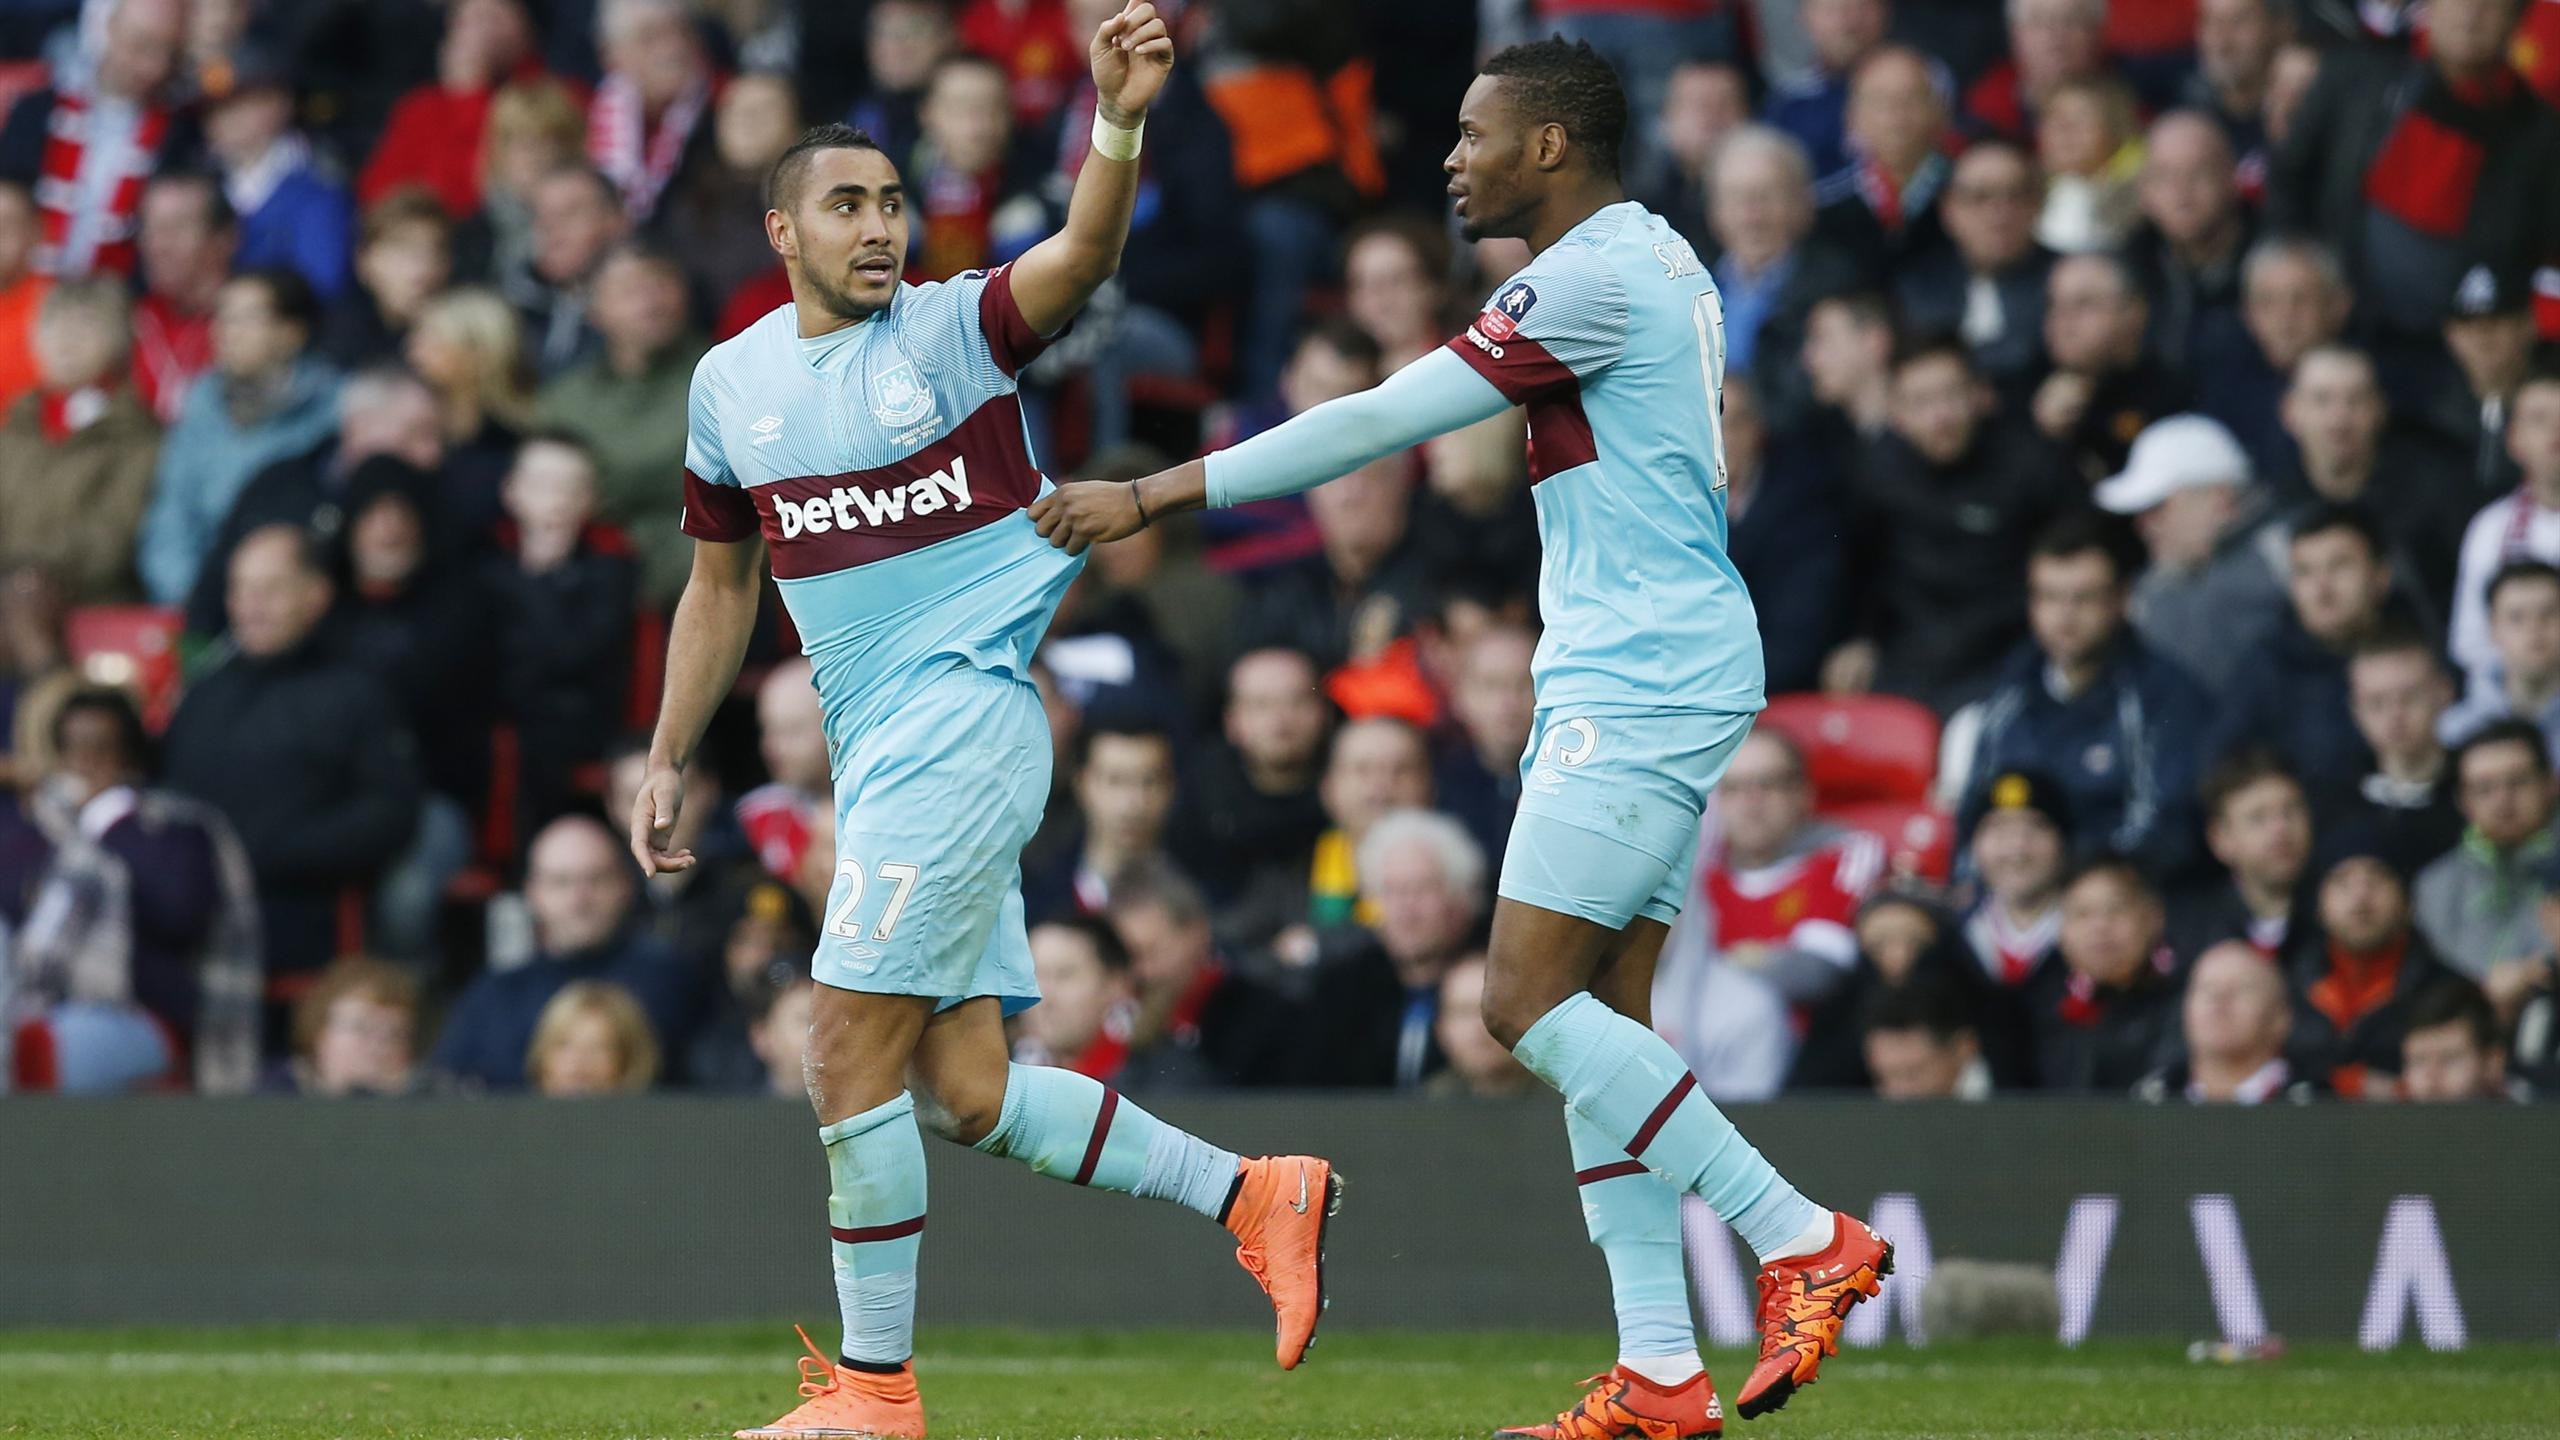 Dimitri Payet celebrates scoring the first goal for West Ham